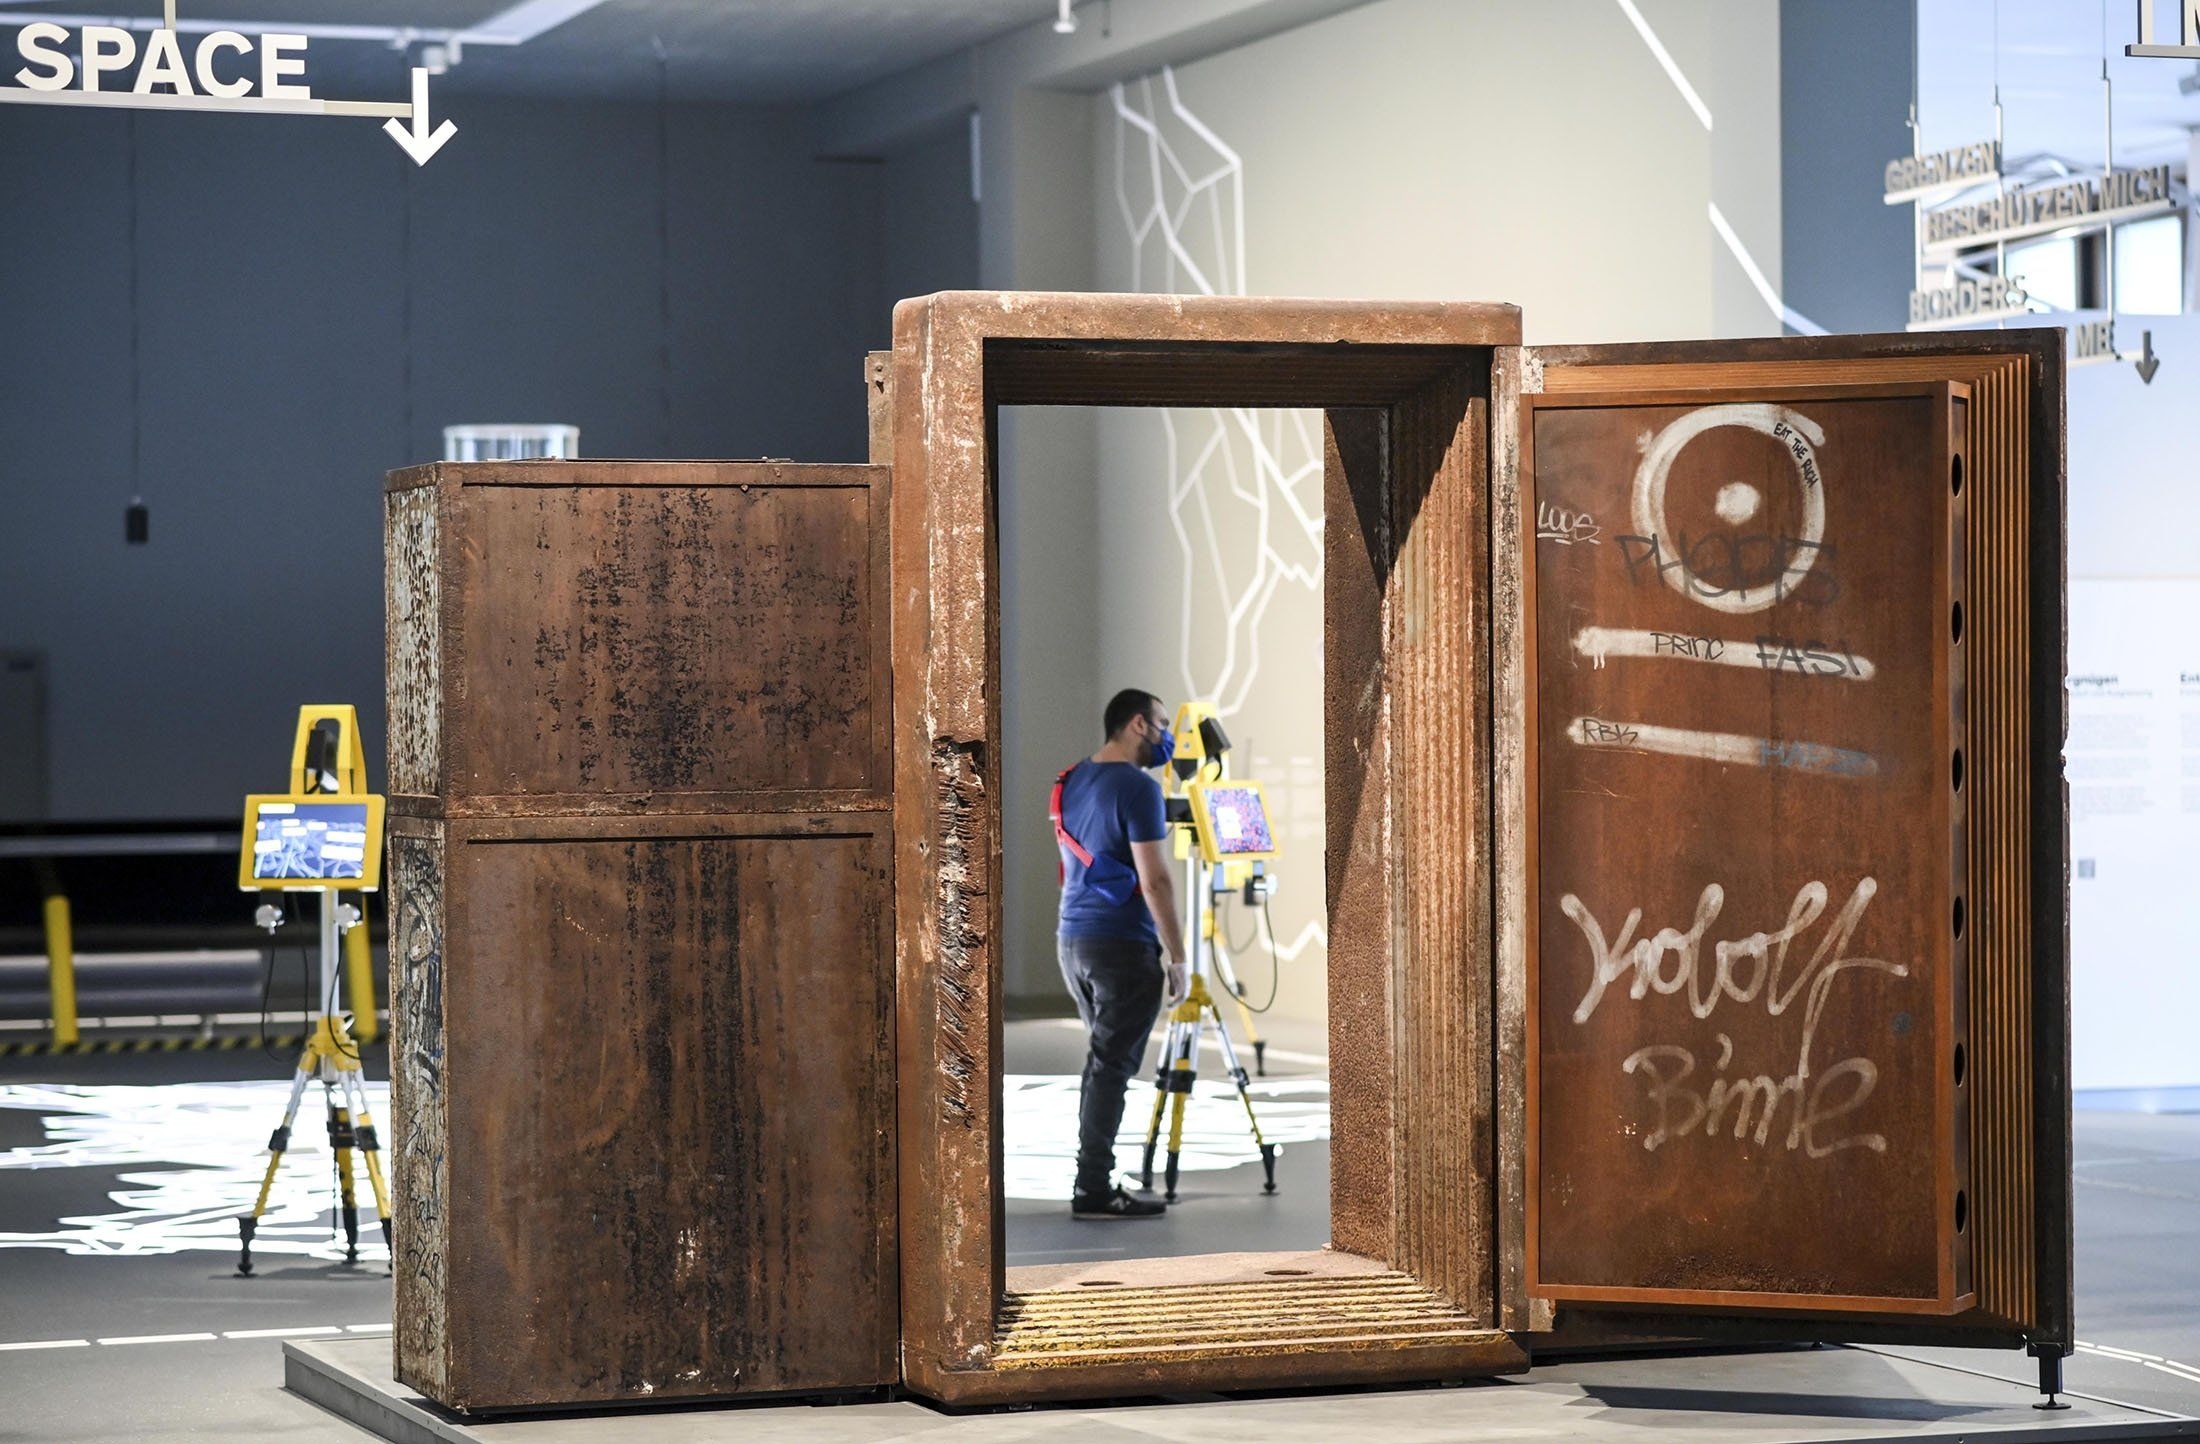 The old door of the techno club 'Tresor' in the Berlin exhibition at the Humboldt Forum 'Berlin Global' at the presentation day before the opening of the Humboldt Forum in Berlin, Germany, July 19, 2021. (dpa via AP)